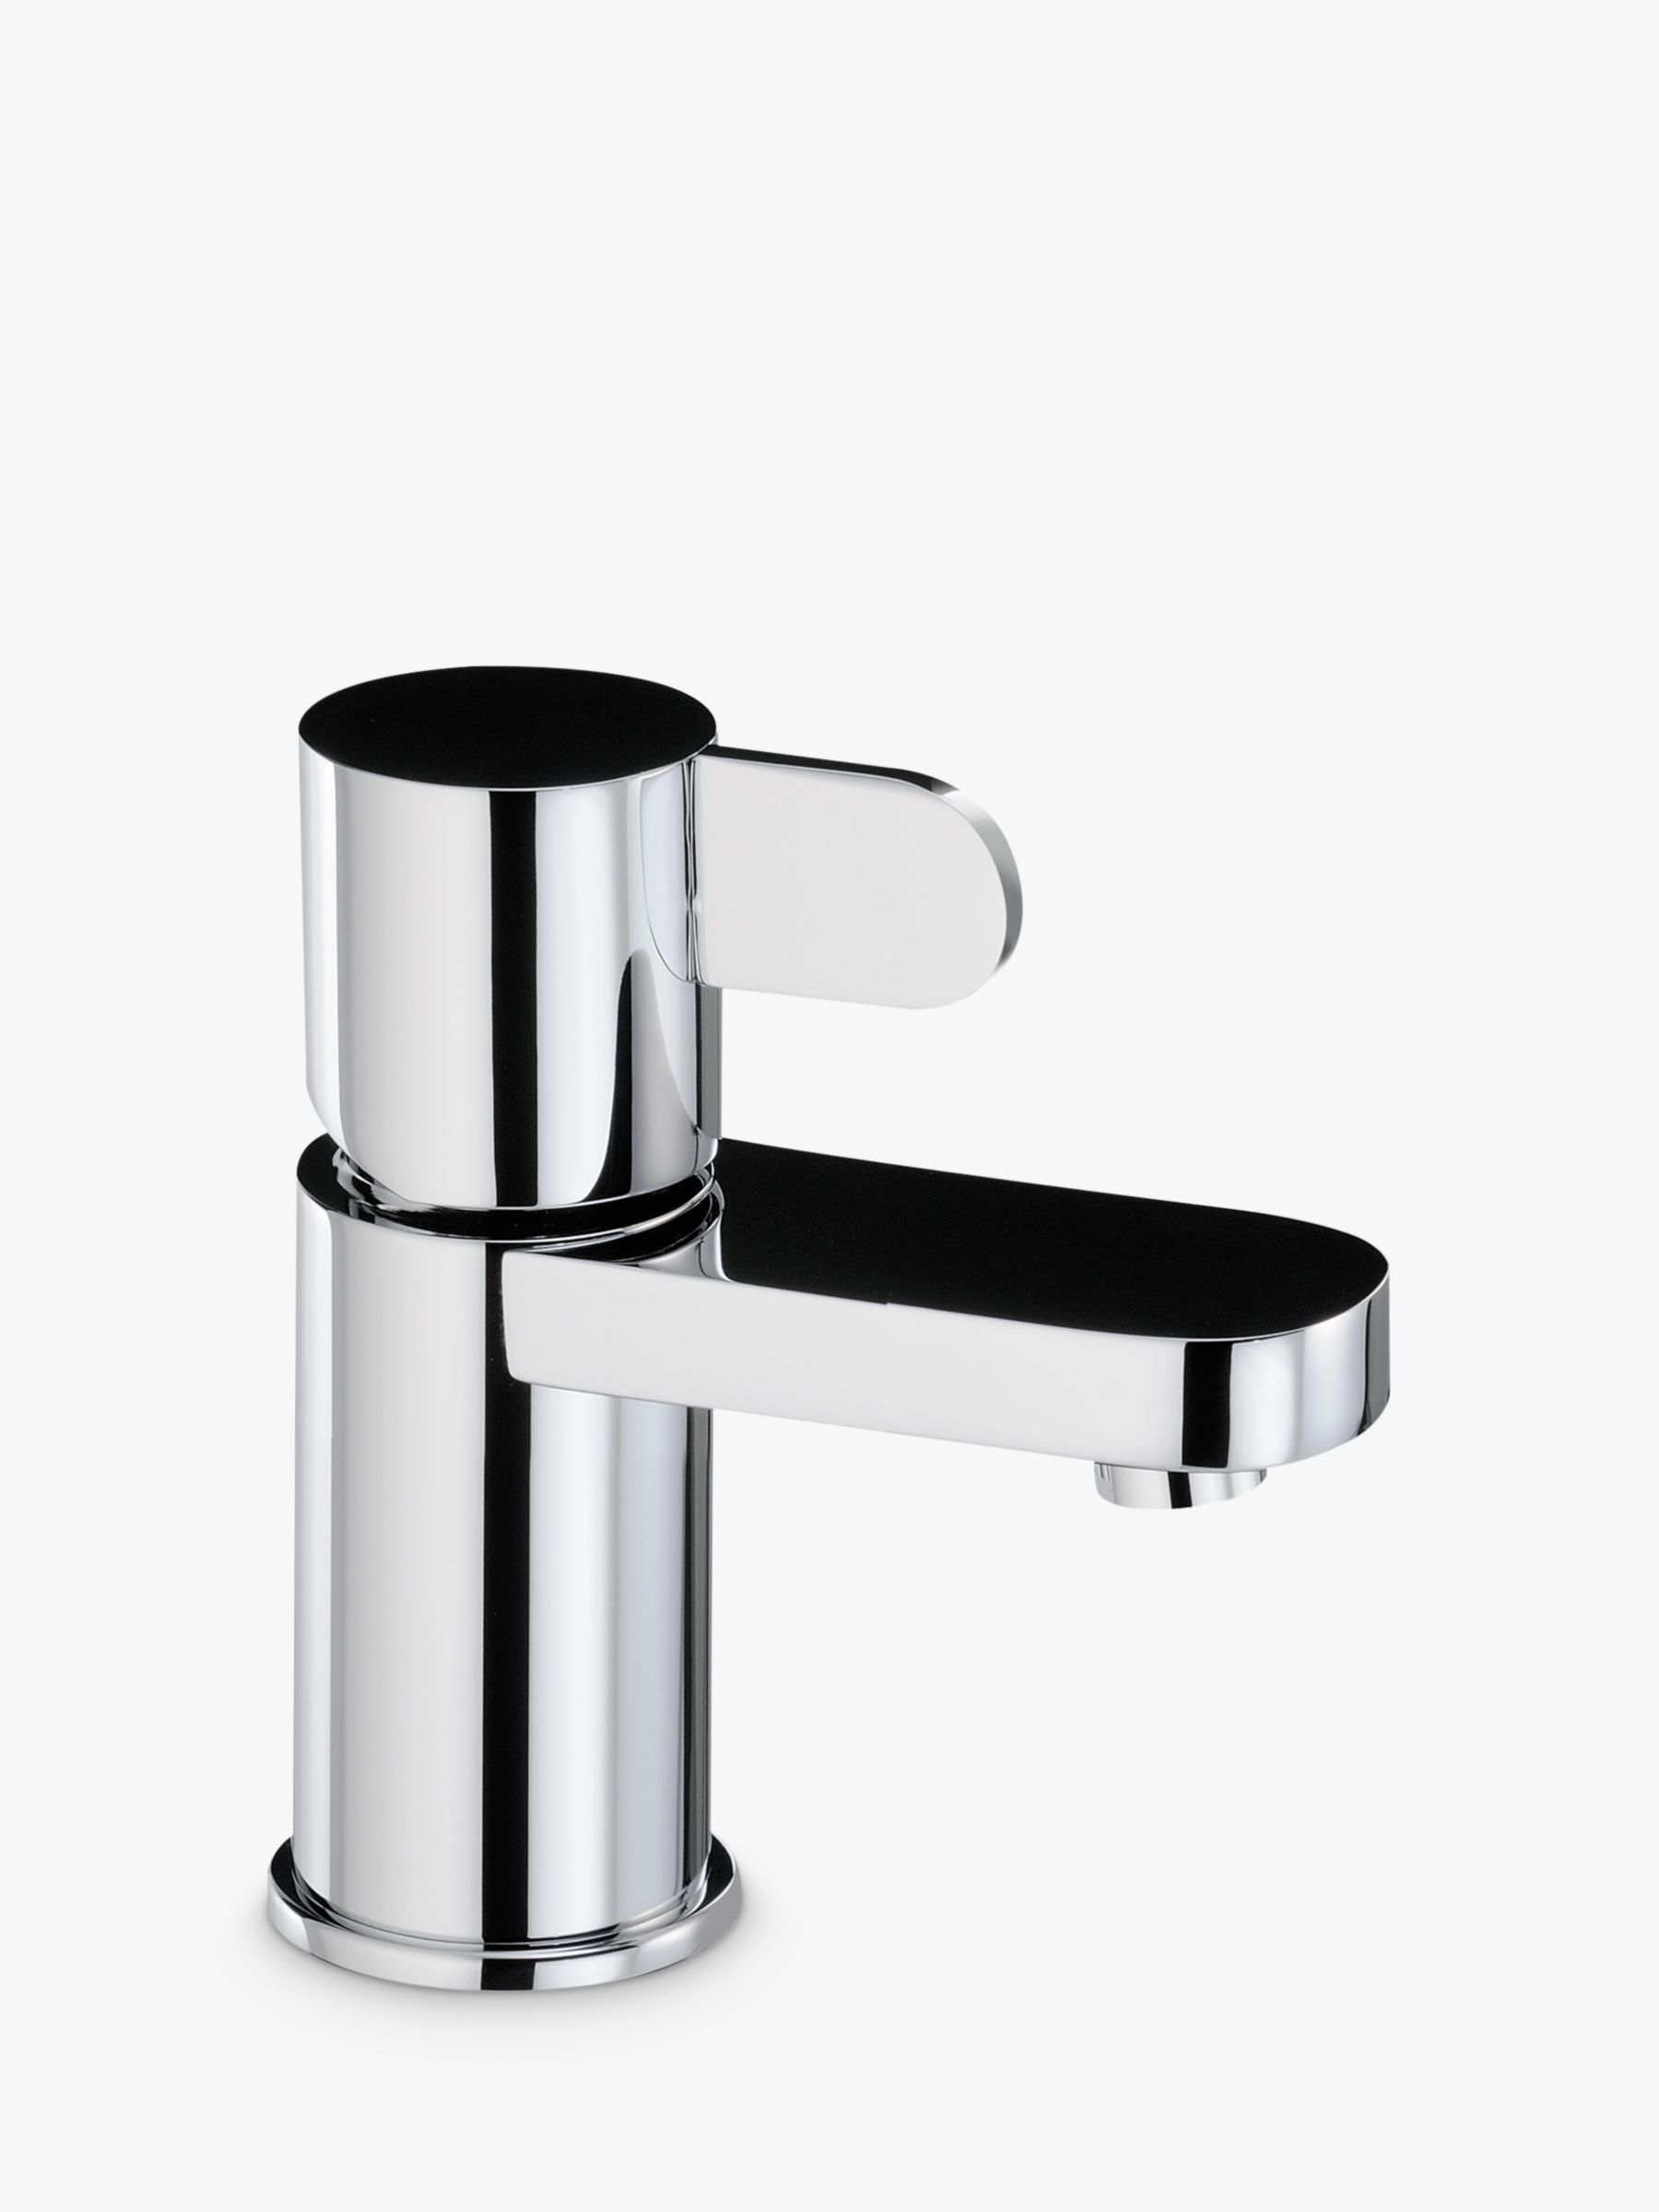 Abode Abode Bliss Vanity Basin Mixer Tap